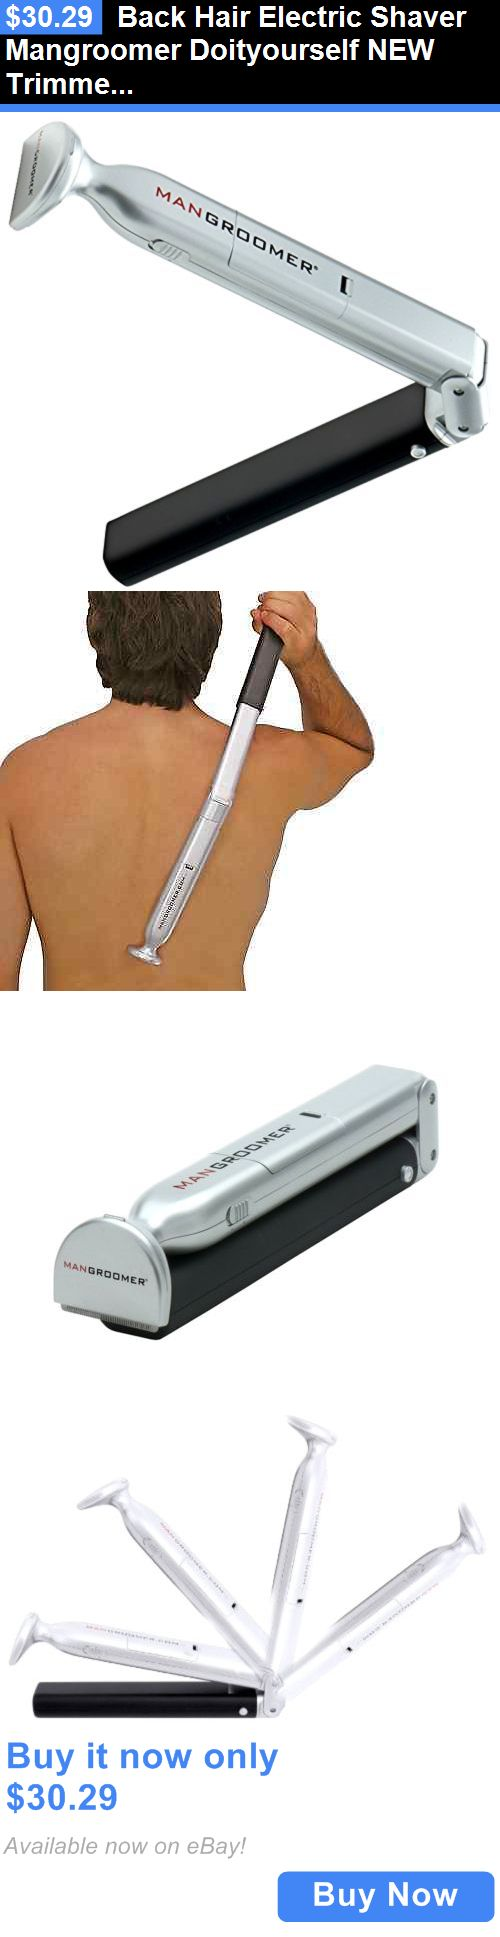 Shaving: Back Hair Electric Shaver Mangroomer Doityourself New Trimmer Body Mens Groomer BUY IT NOW ONLY: $30.29